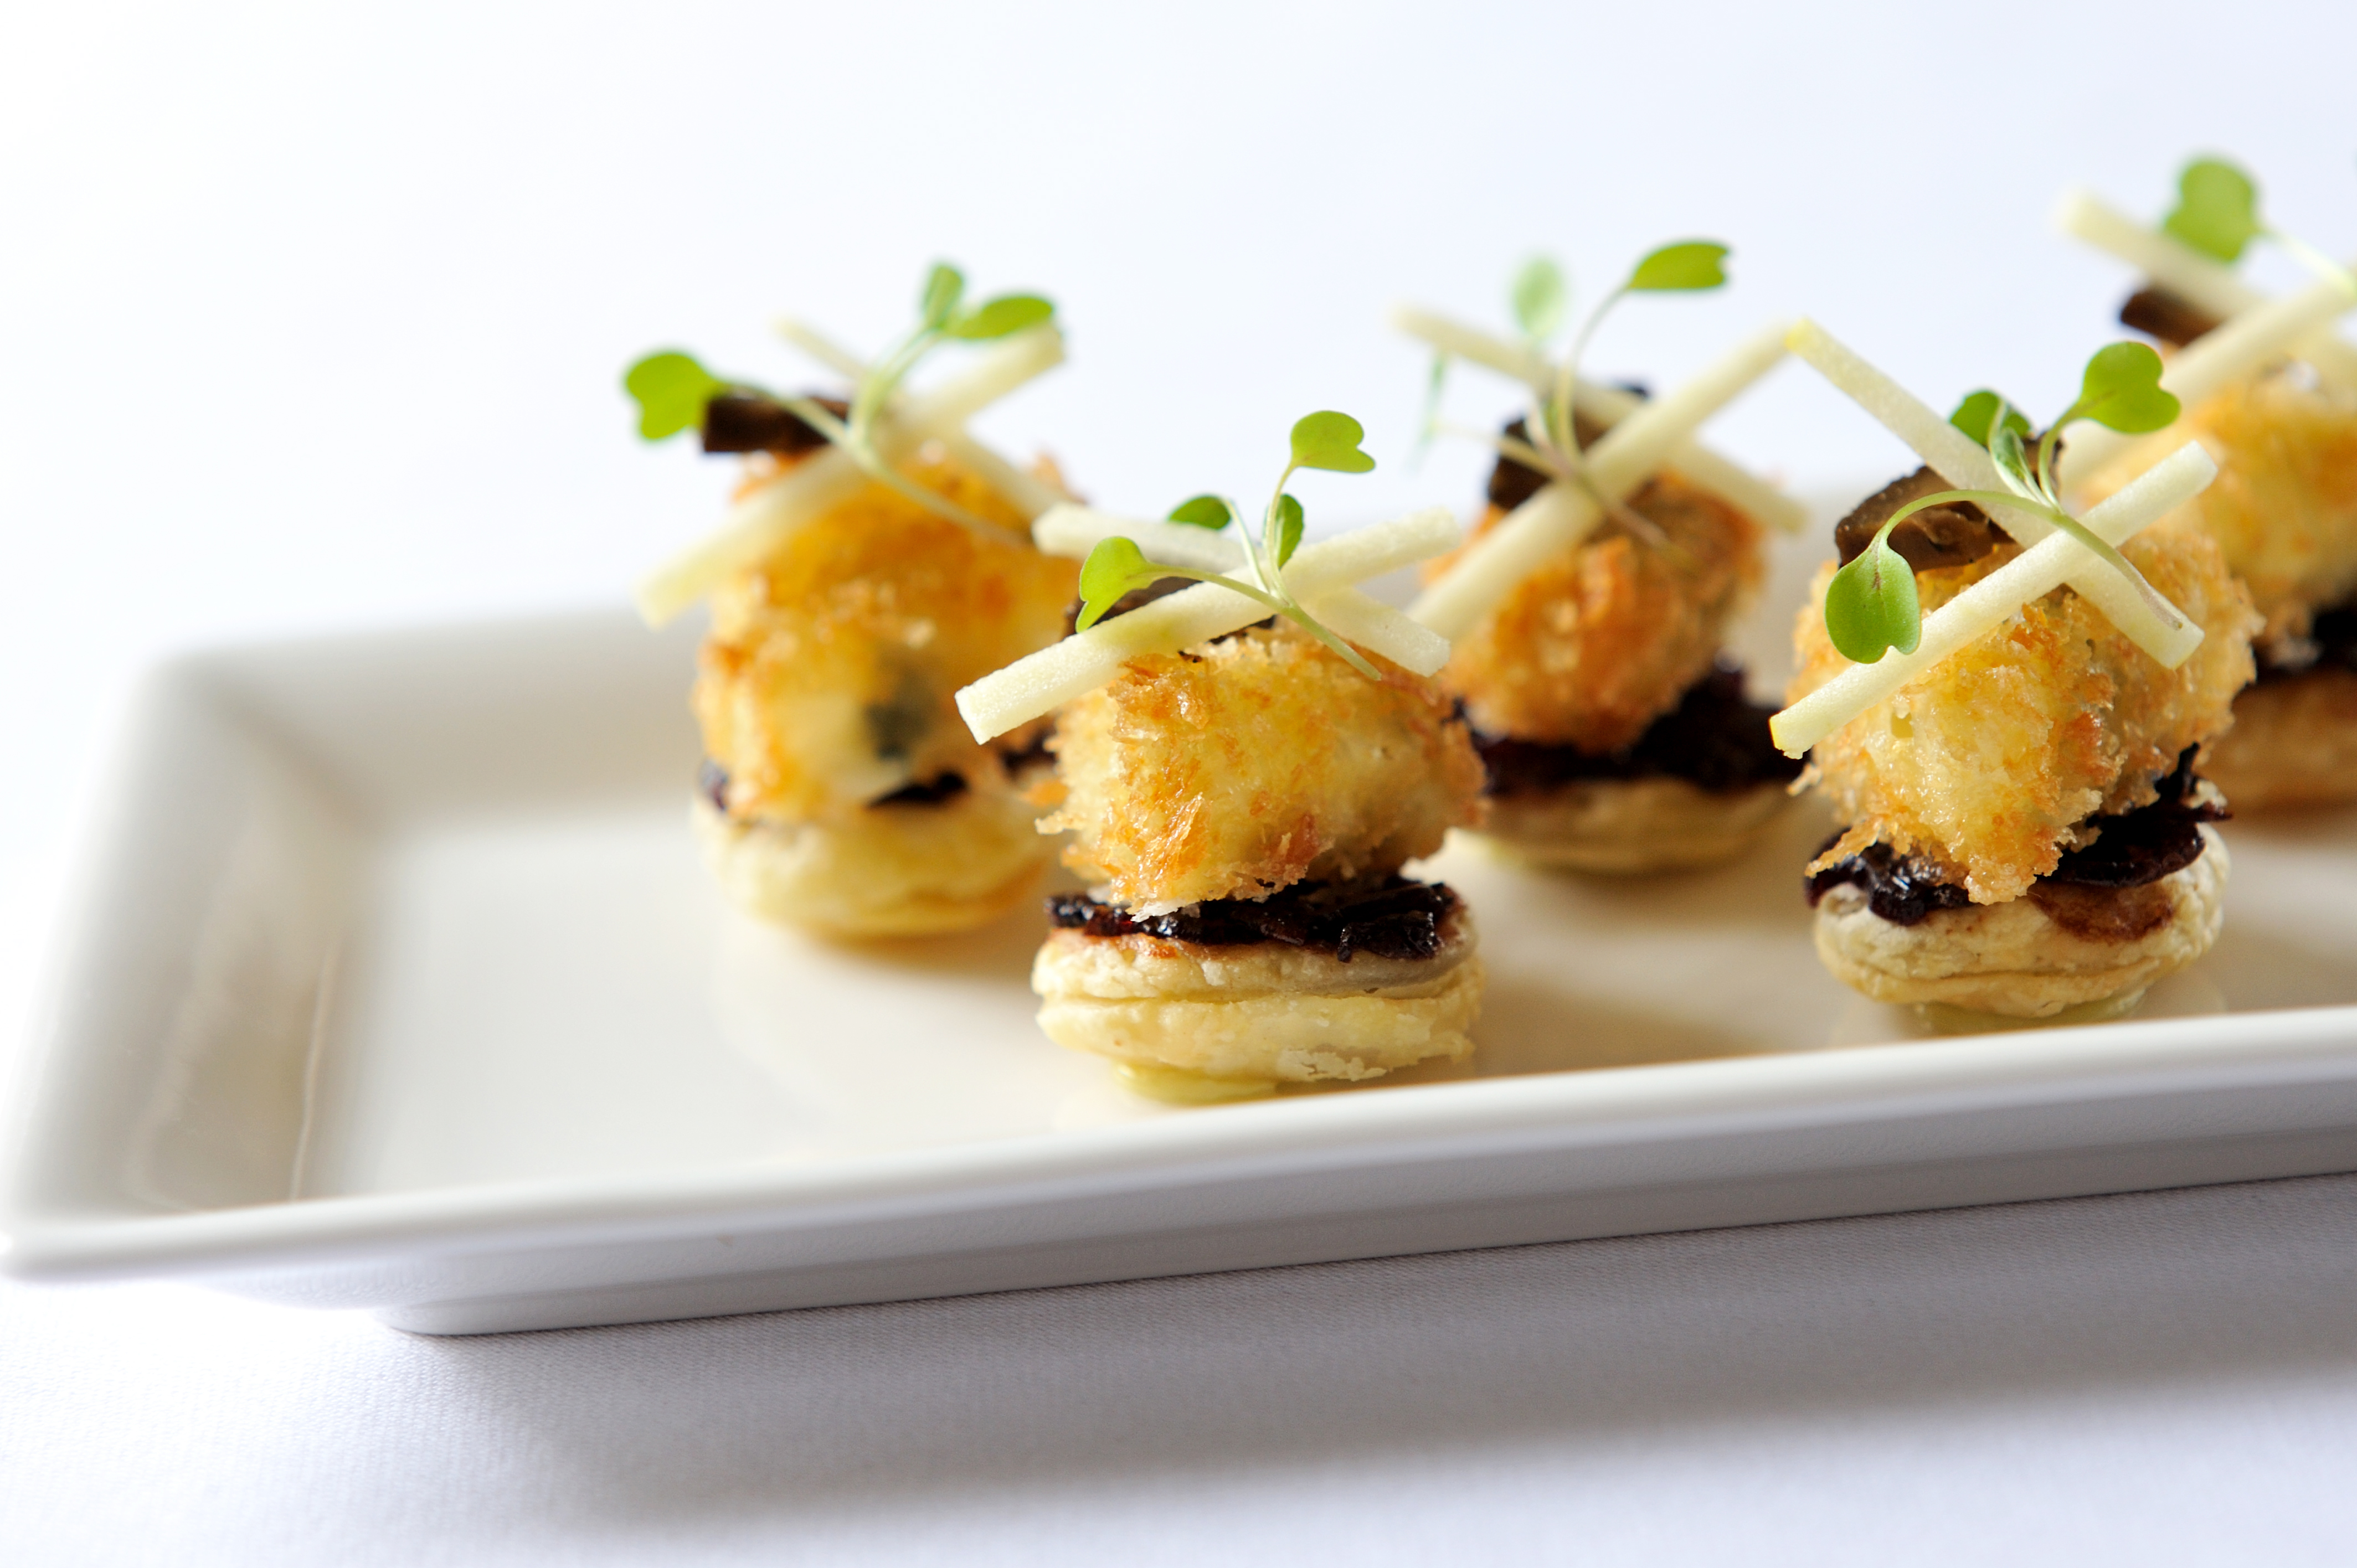 Canap recipes great british chefs forumfinder Images